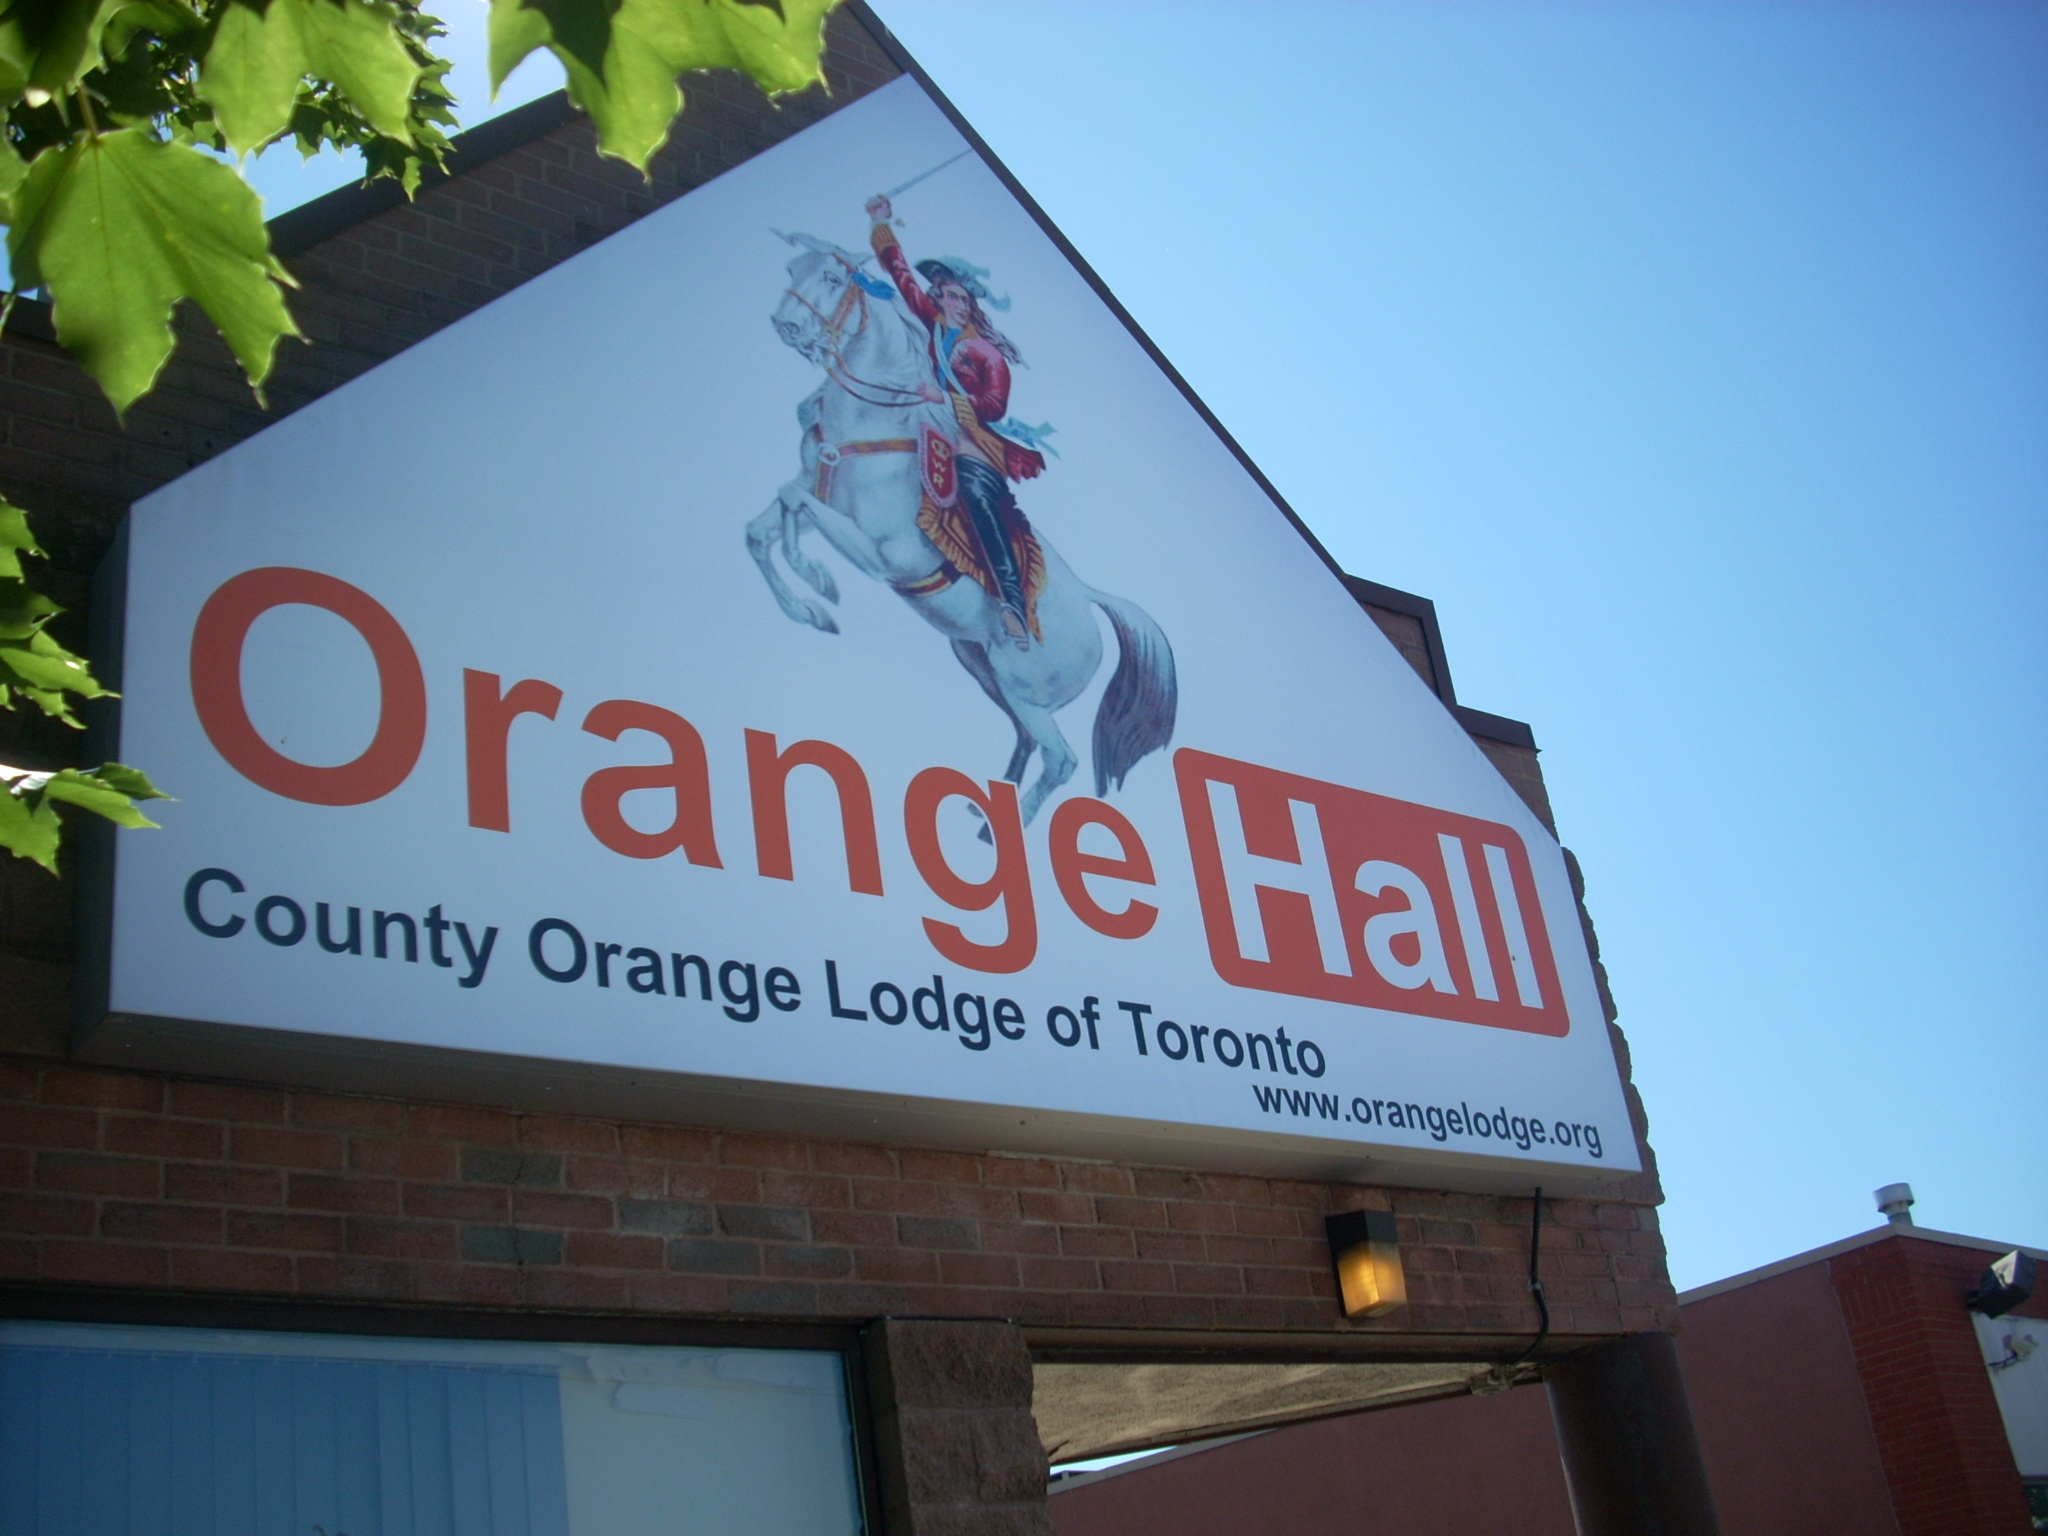 The House of Orange